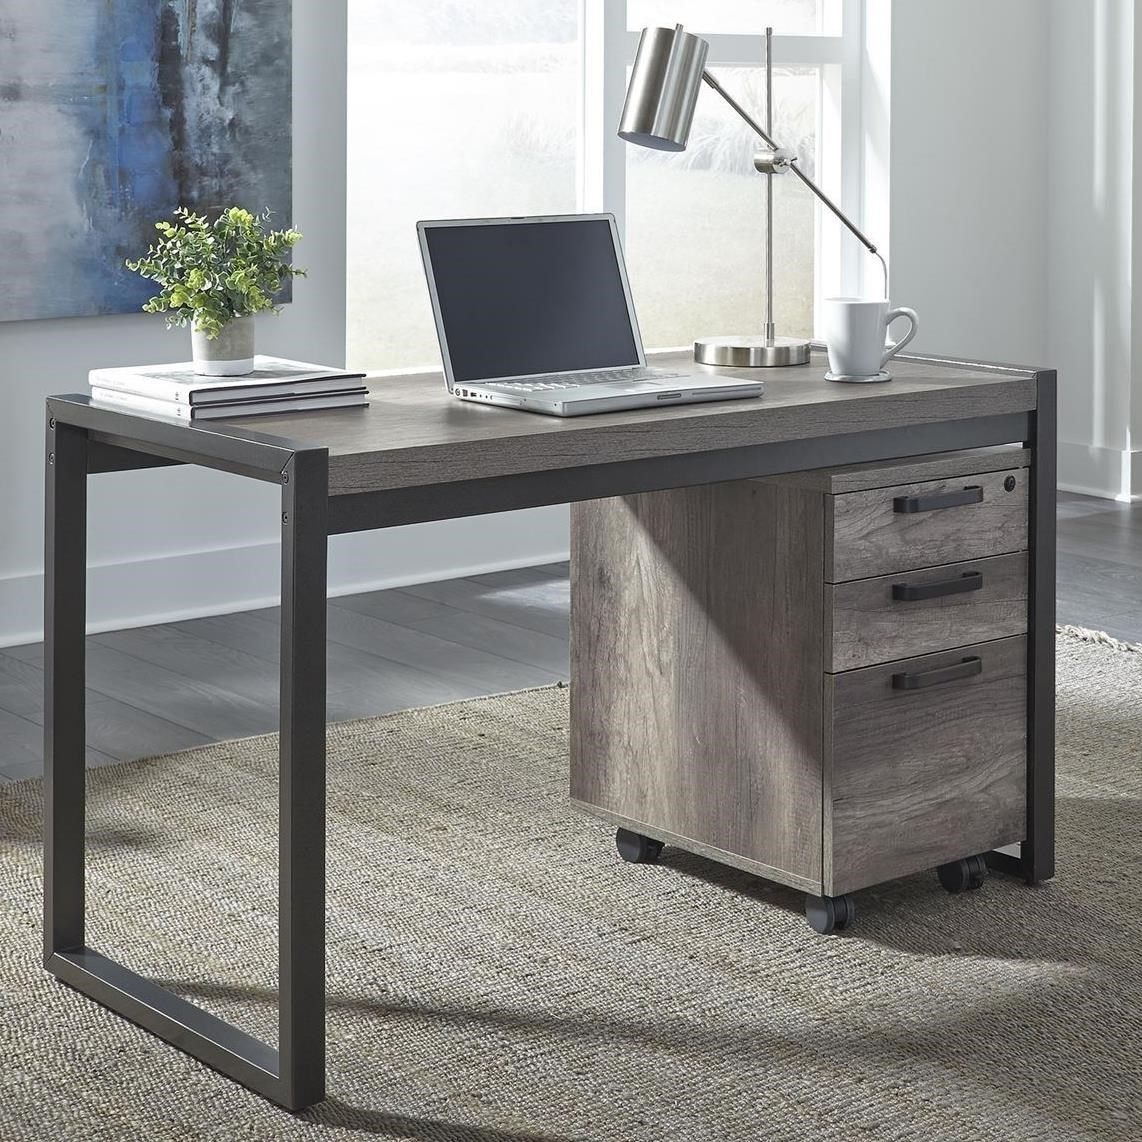 Desk With File Cabinet Tanners Creek Contemporary Writing Desk With 3 Drawer File Cabinet By Liberty Furniture At Royal Furniture